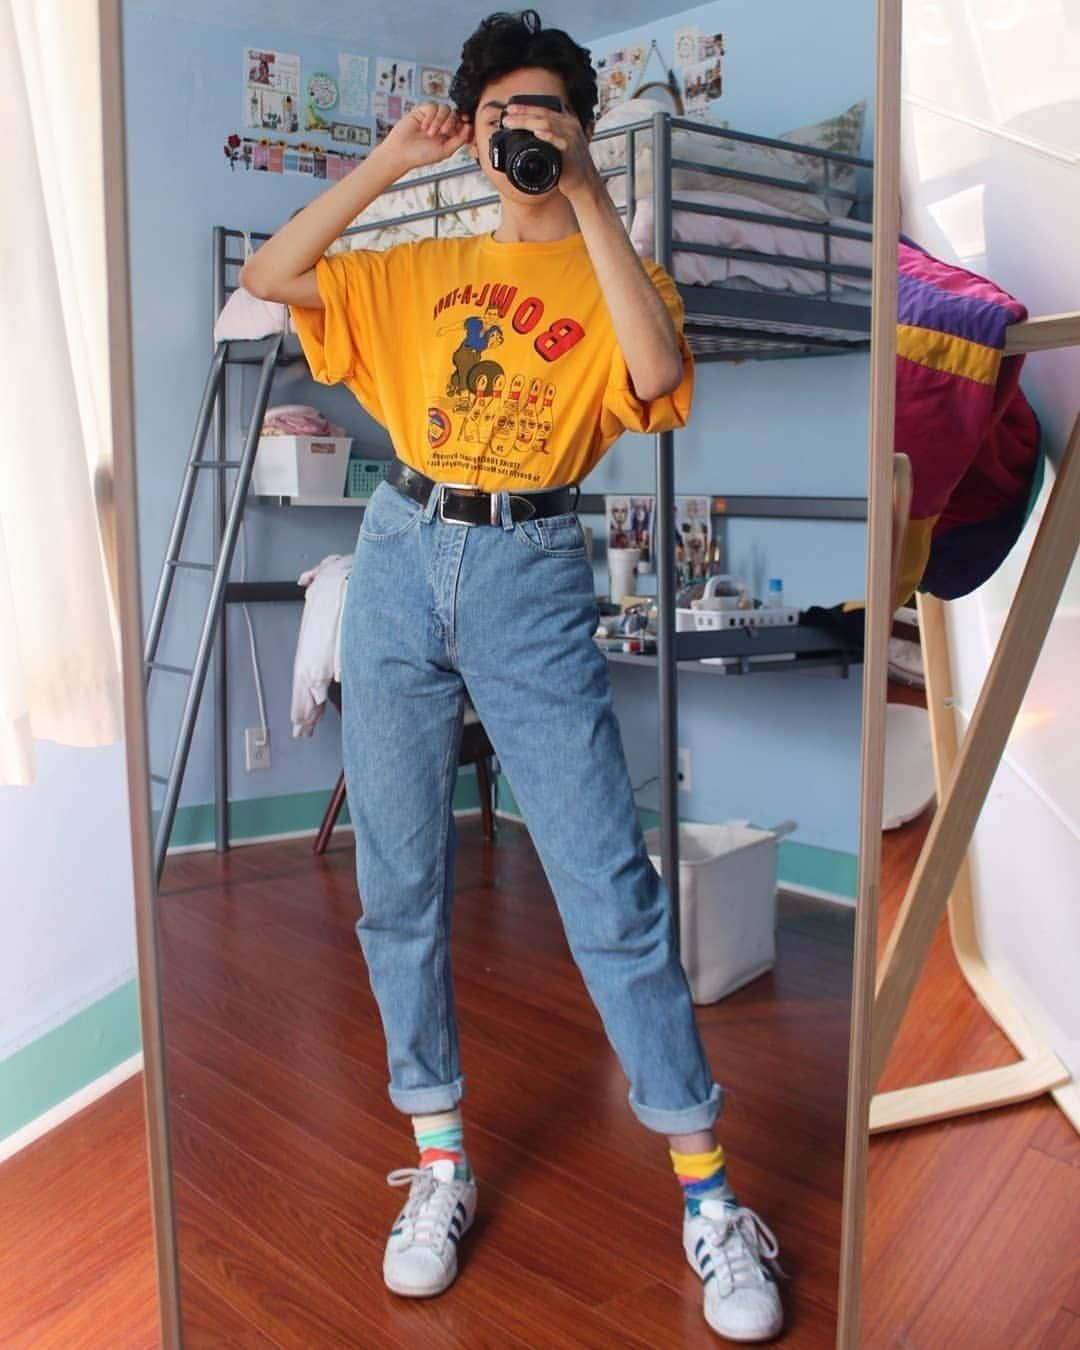 "Your piece of aesthetics 🌻 on Instagram: ""1 , 2 , 3 , 4 , 5 or 6? 🌻 @grungepiece Follow @retropiece for more 🌻 cr: @celestialyouth 🌻"" 1"